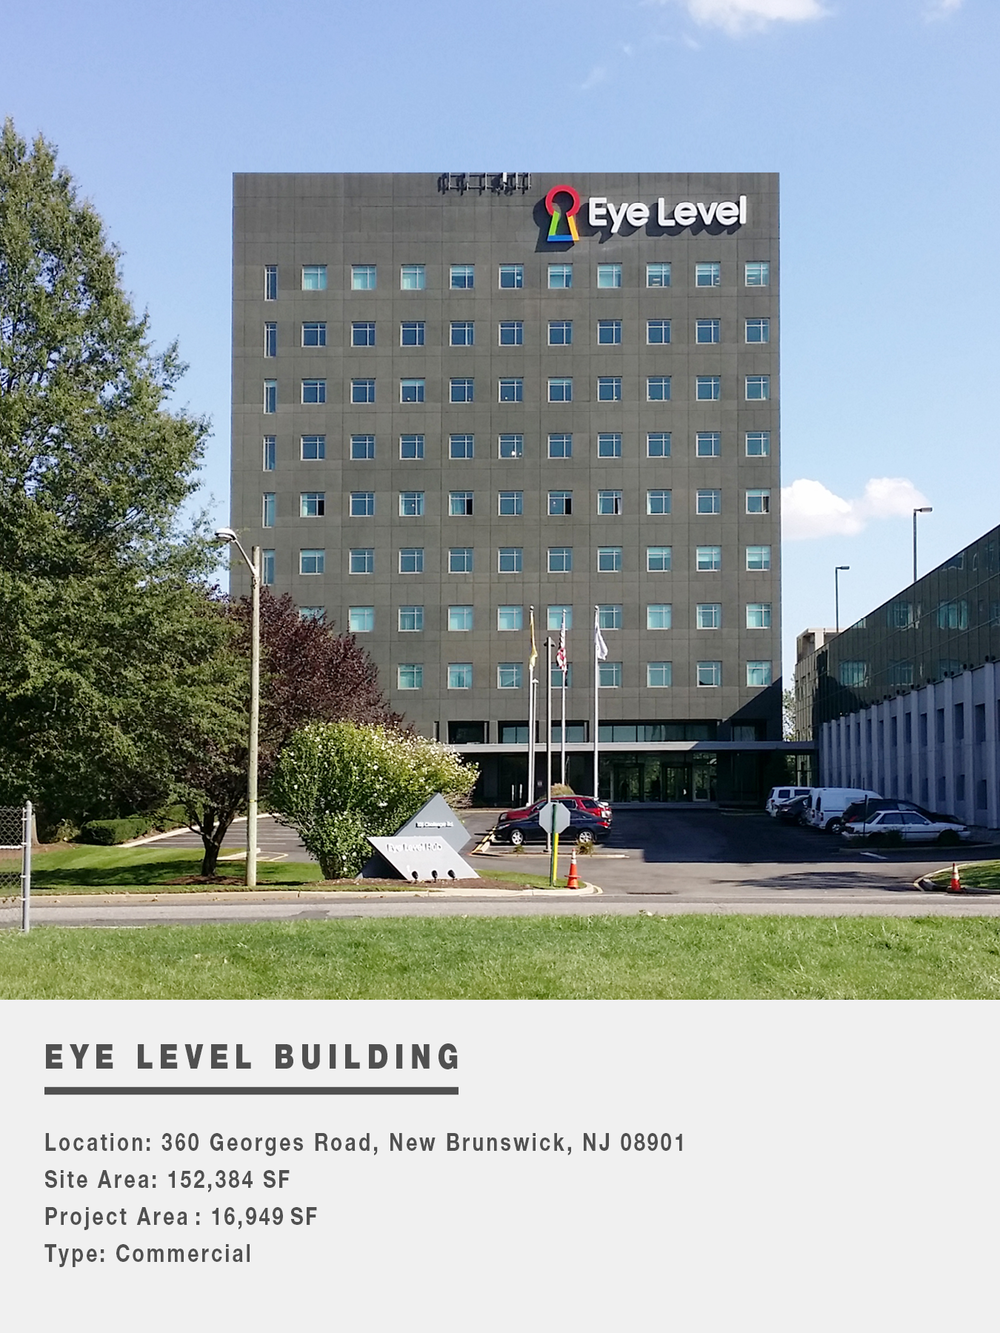 EYE LEVEL BUILDING